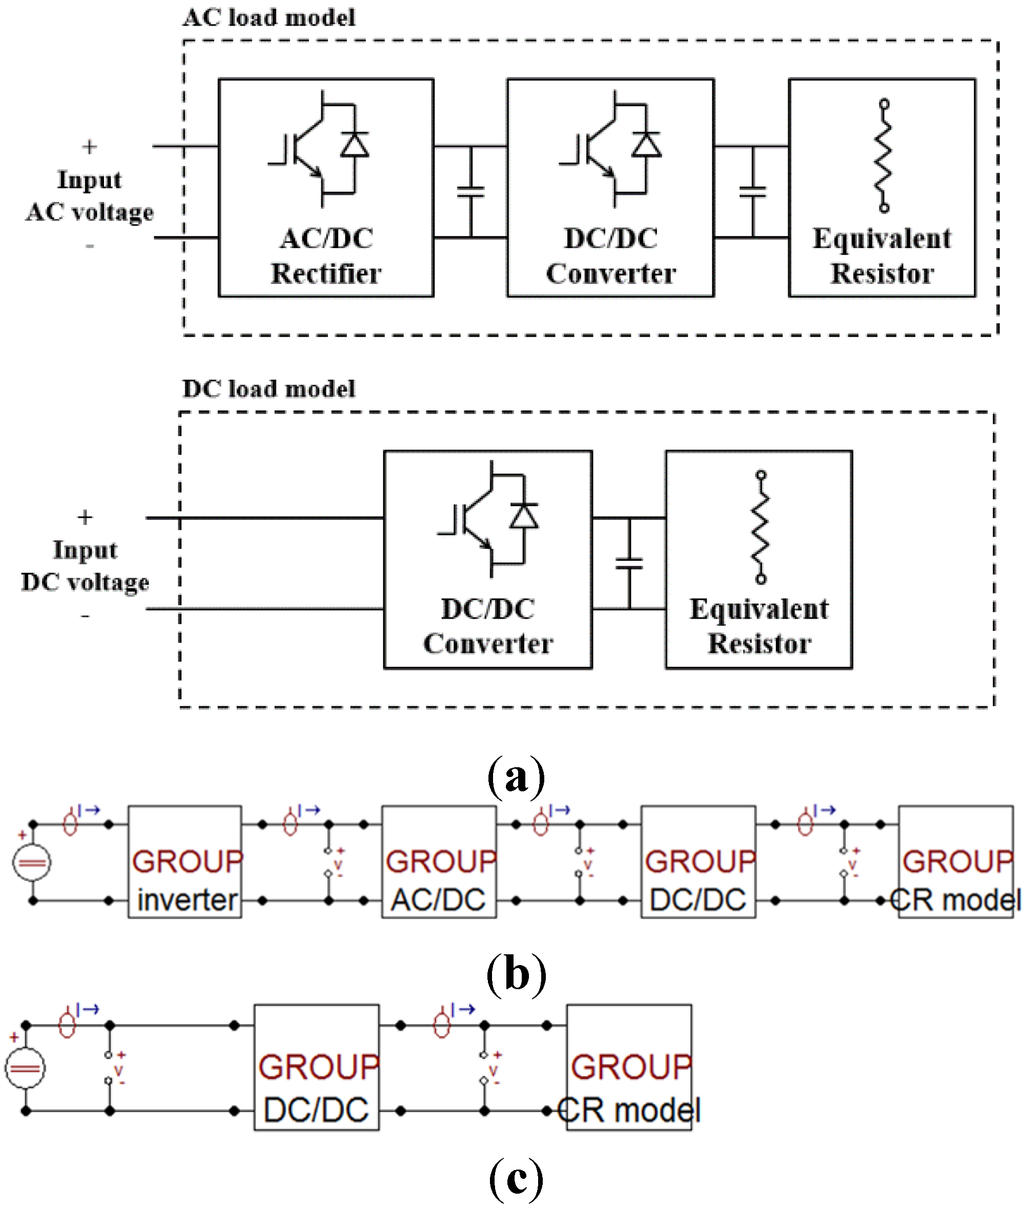 Resources Free Full Text Modeling And Analysis Of A Low Voltage Dc To Converter Circuit Diagram 04 00713 G012 1024